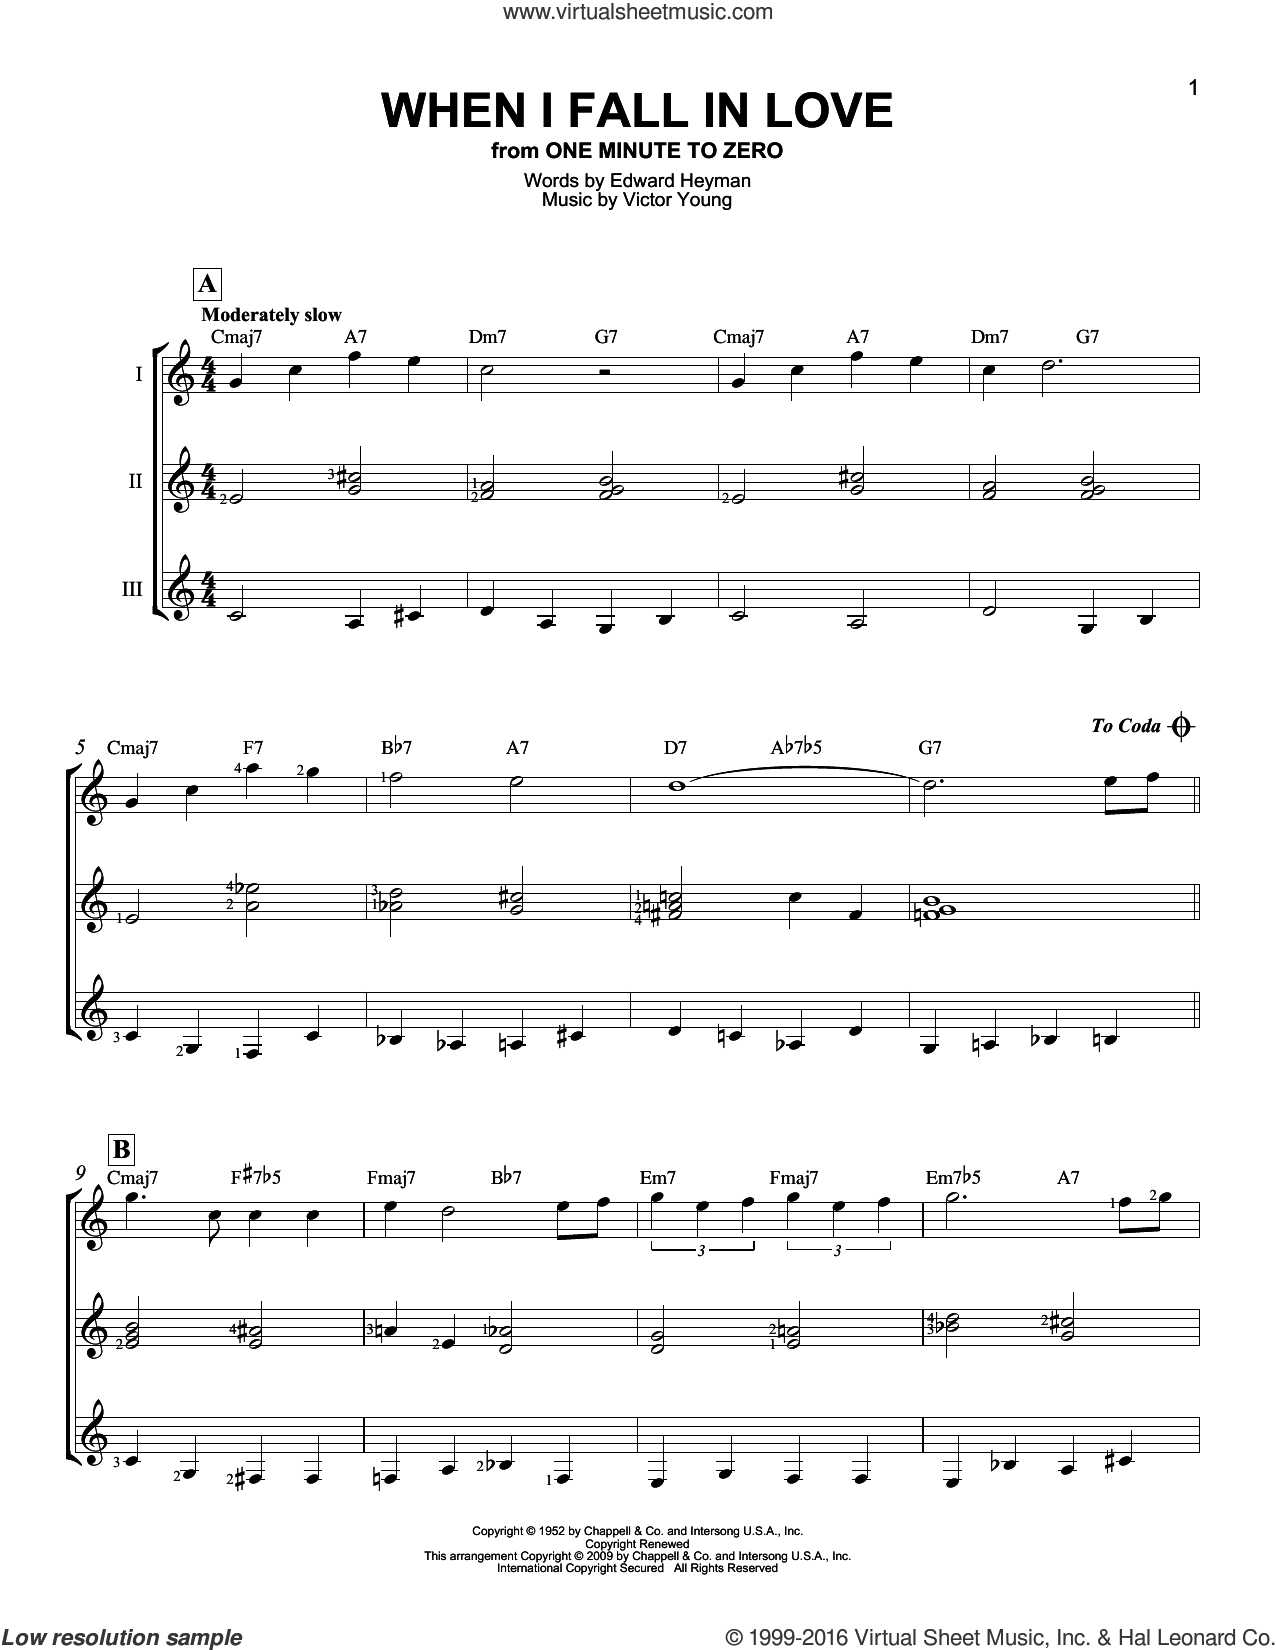 When I Fall In Love sheet music for guitar ensemble by Victor Young, Carpenters, Celine Dion and Clive Griffin, The Lettermen and Edward Heyman, intermediate skill level